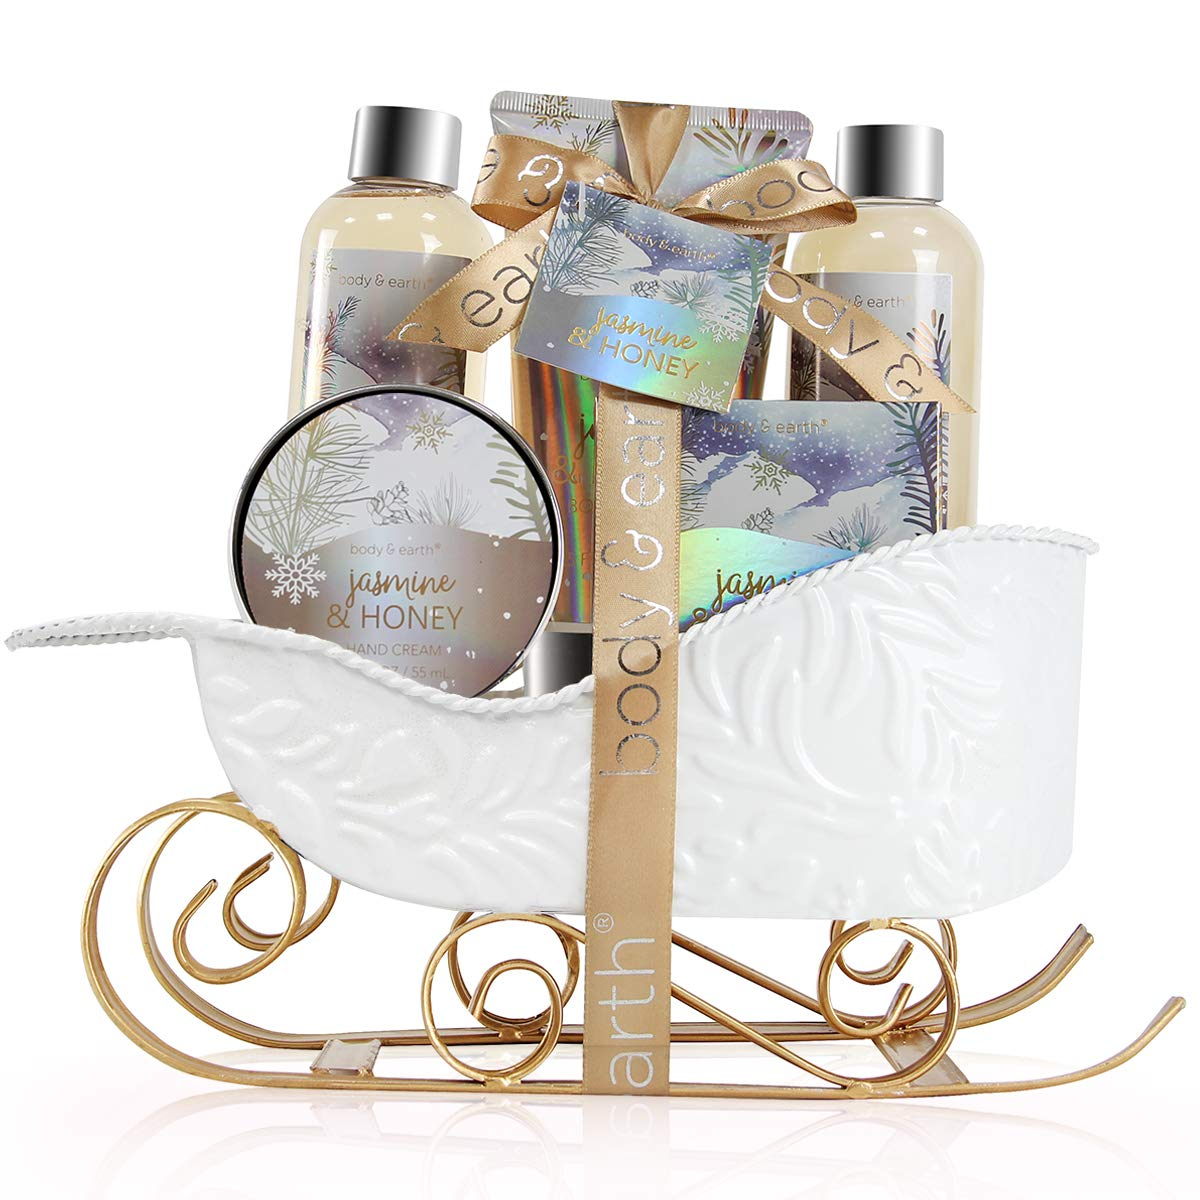 Bath and Body Set - Body & Earth Women Gifts Spa Set with Jasmine & Honey Scent, Includes Bubble Bath, Shower Gel, Soap, Body Lotion and Hand Cream. Perfect Gift Basket for Christmas by BODY & EARTH